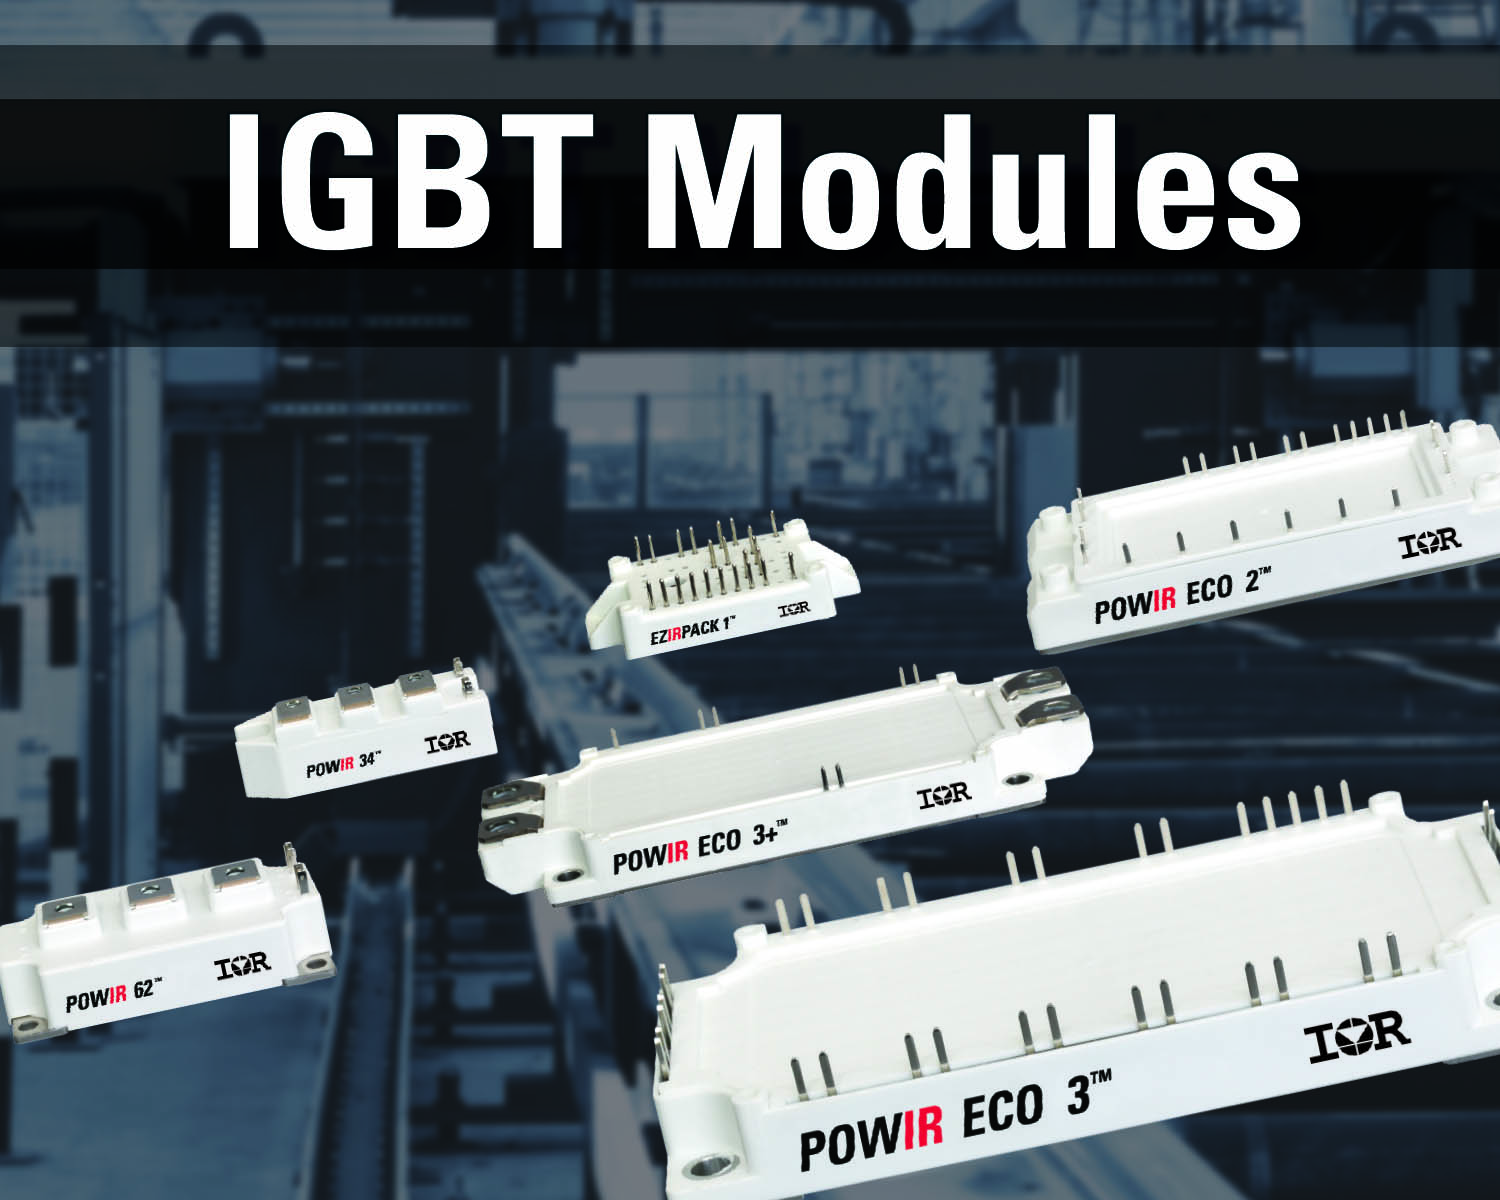 IR's latest IGBT modules suit high-power industrial apps